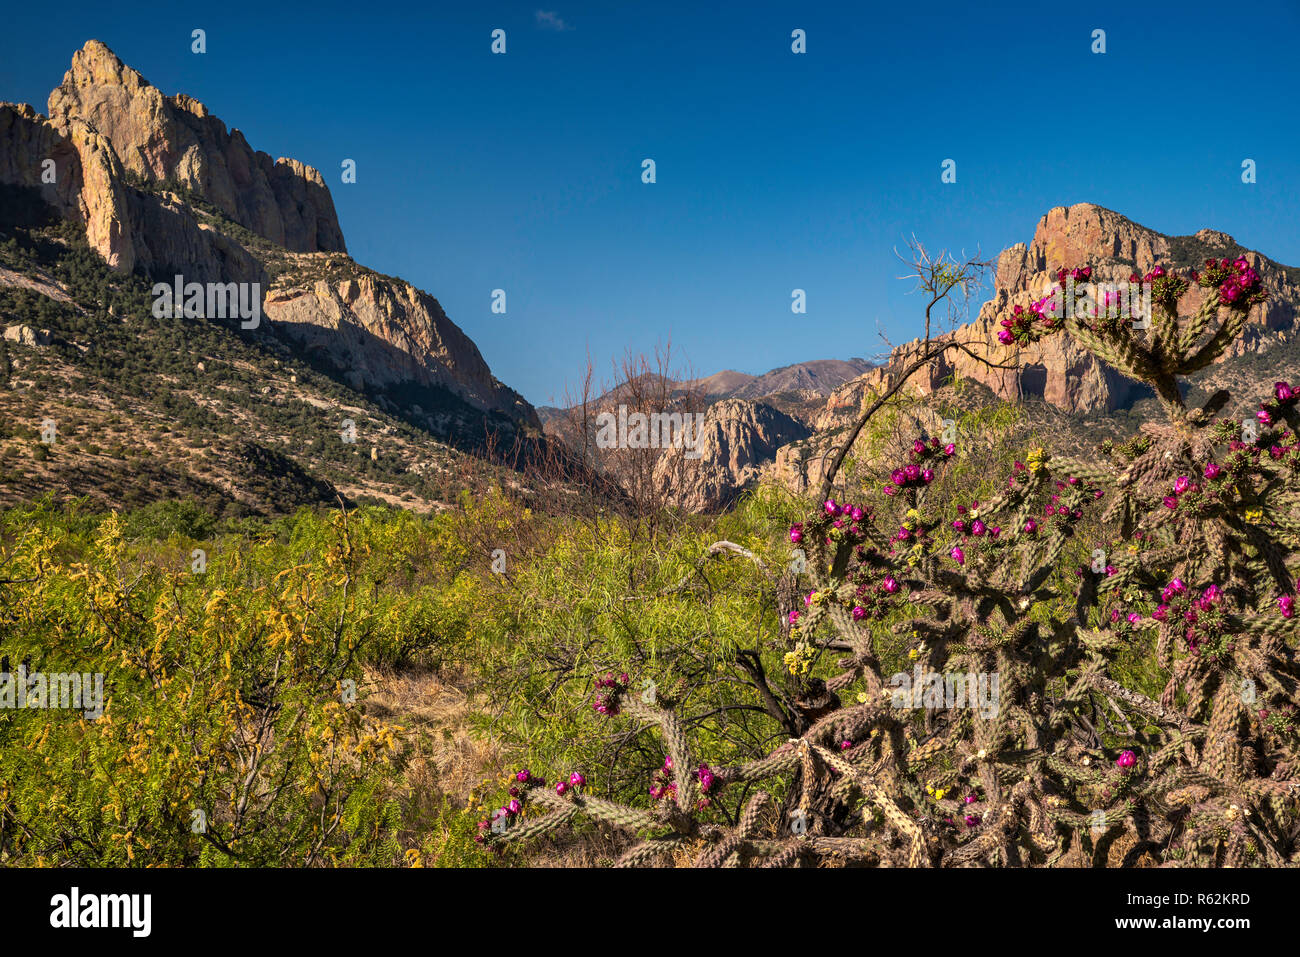 Buckhorn cholla cactus in bloom, Cathedral Rock on left, Cave Creek Canyon in distance, Chiricahua Mountains, view near Portal, Arizona, USA Stock Photo